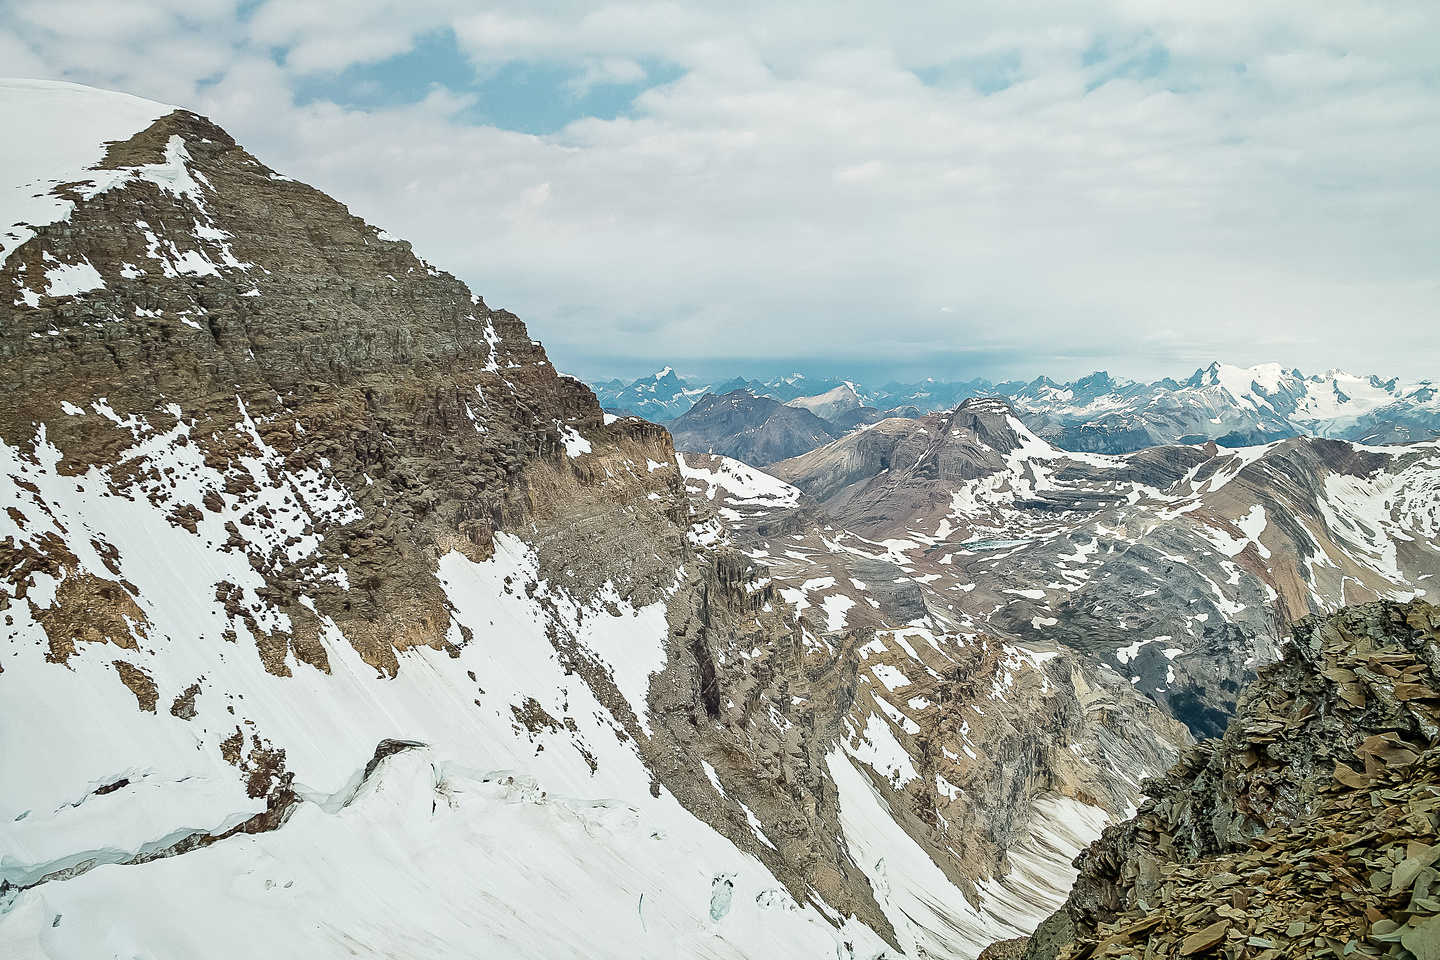 Descending to the col.